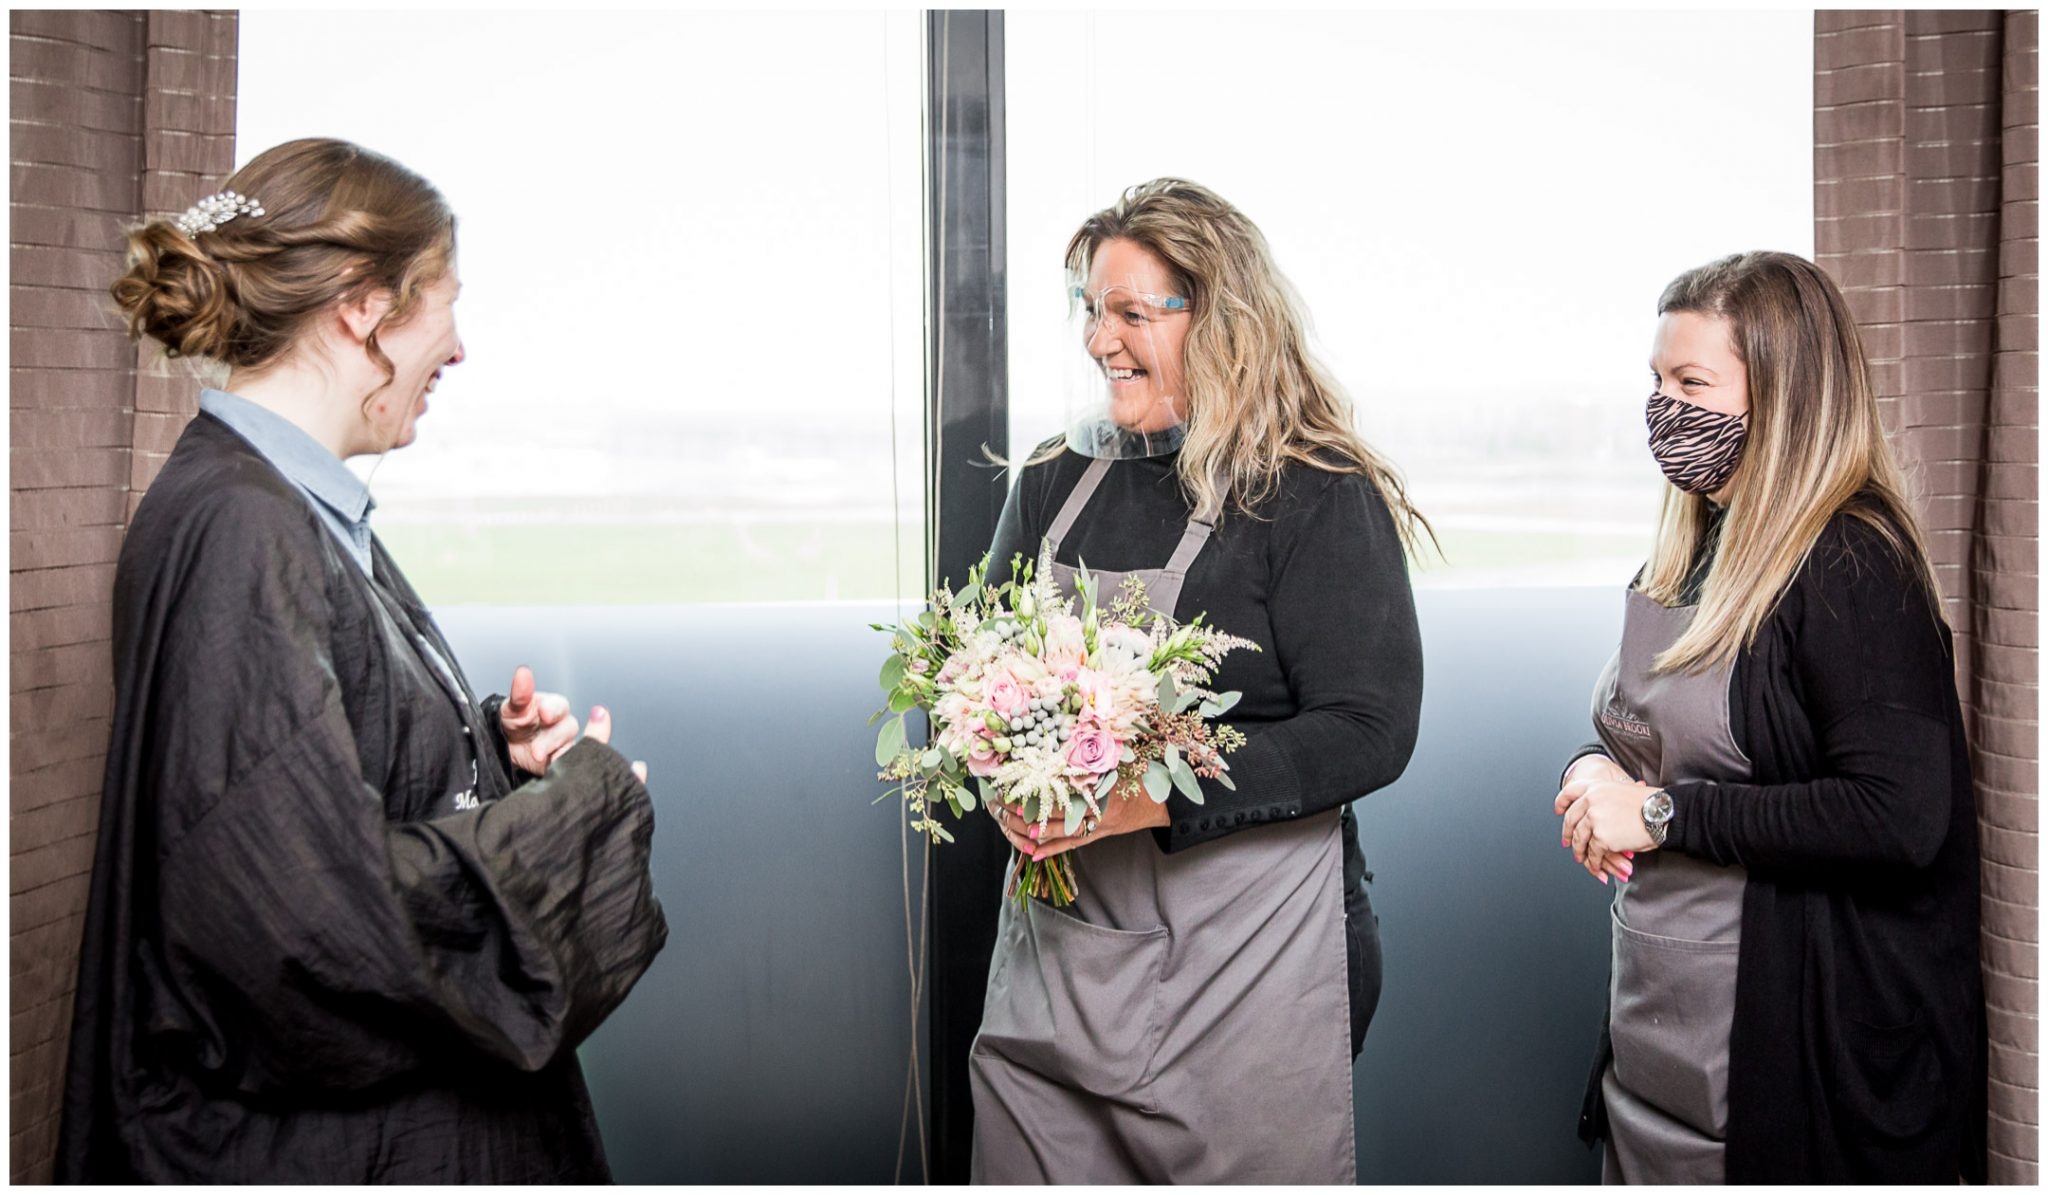 Florists deliver the bouquets to the bridal suite